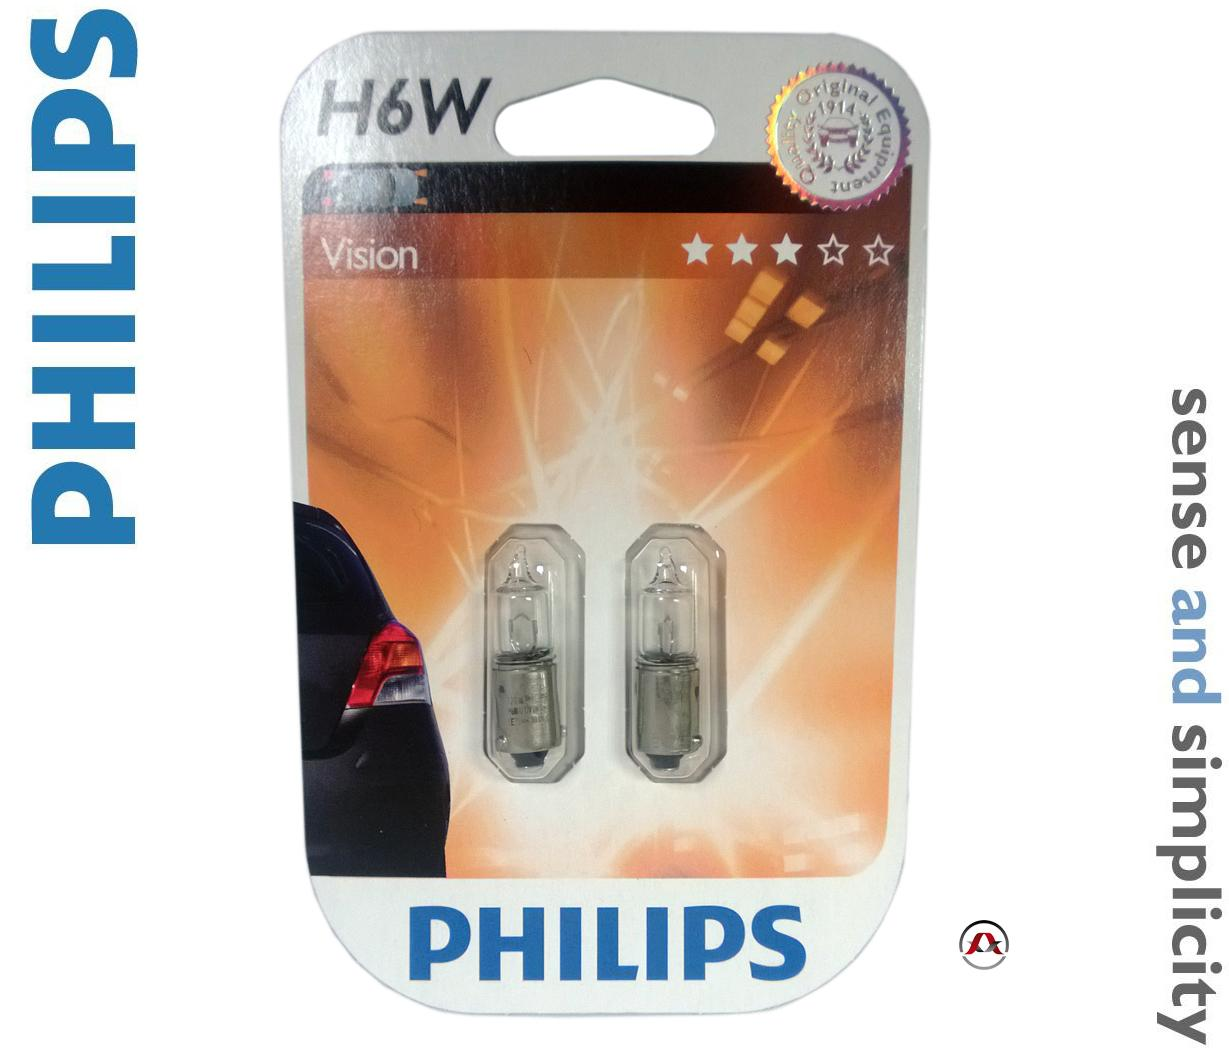 ampoule voiture ba 12v philips h6w vision philips. Black Bedroom Furniture Sets. Home Design Ideas